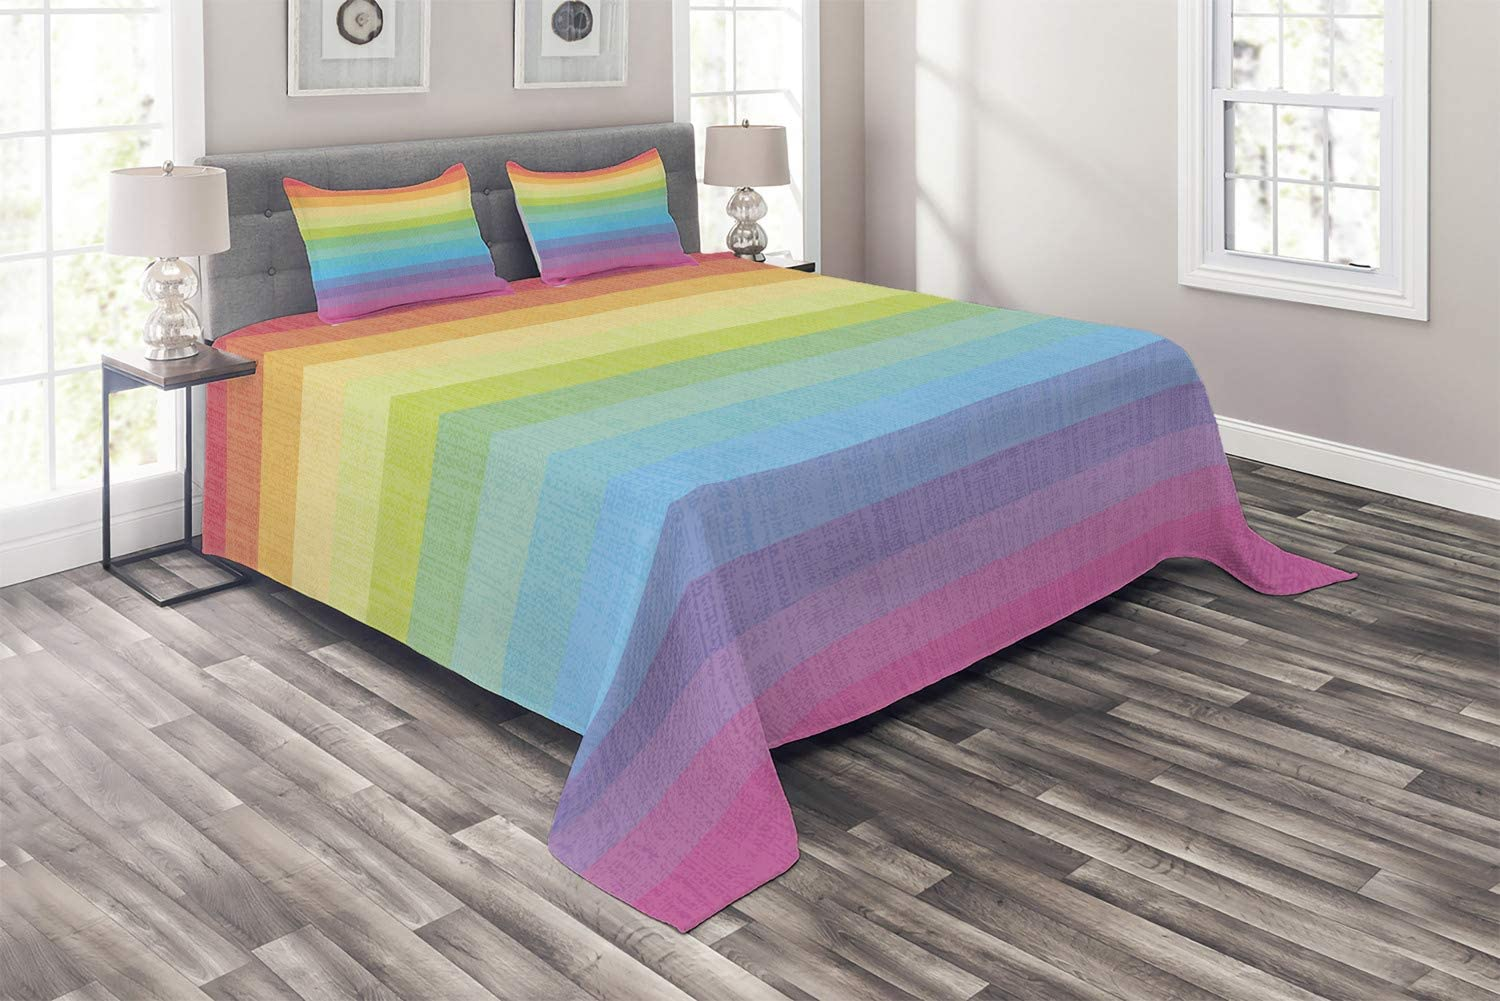 Ambesonne Vintage Rainbow Coverlet, Vintage Abstract Lines with Rainbow Colors Grunge Old Fashioned Stripes, 3 Piece Decorative Quilted Bedspread Set with 2 Pillow Shams, Queen Size, Pastel Rainbow